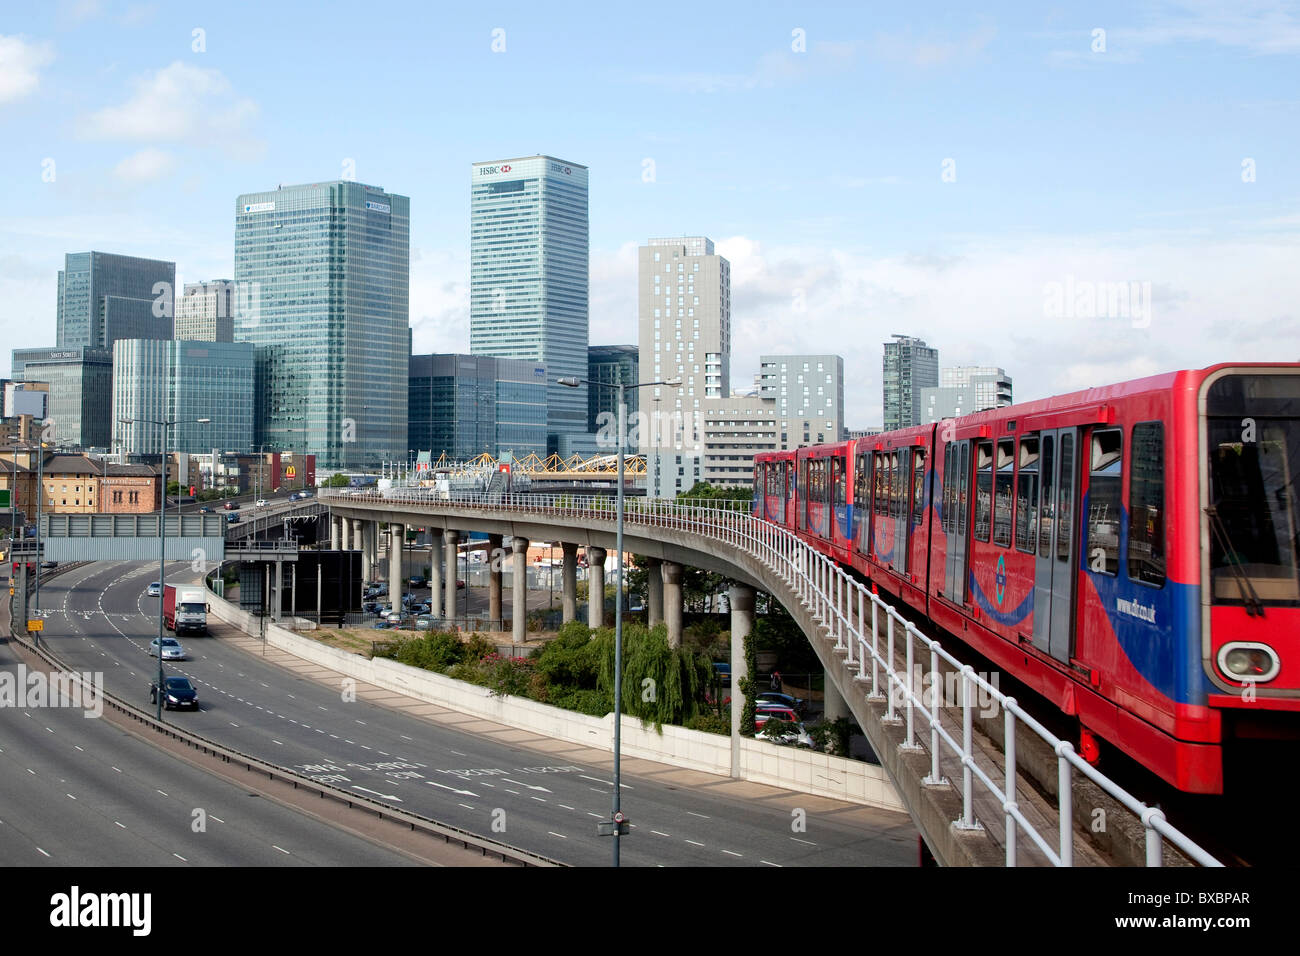 Financial district in Canary Wharf, commuters train DLR and the motorway in London, England, United Kingdom, Europe - Stock Image